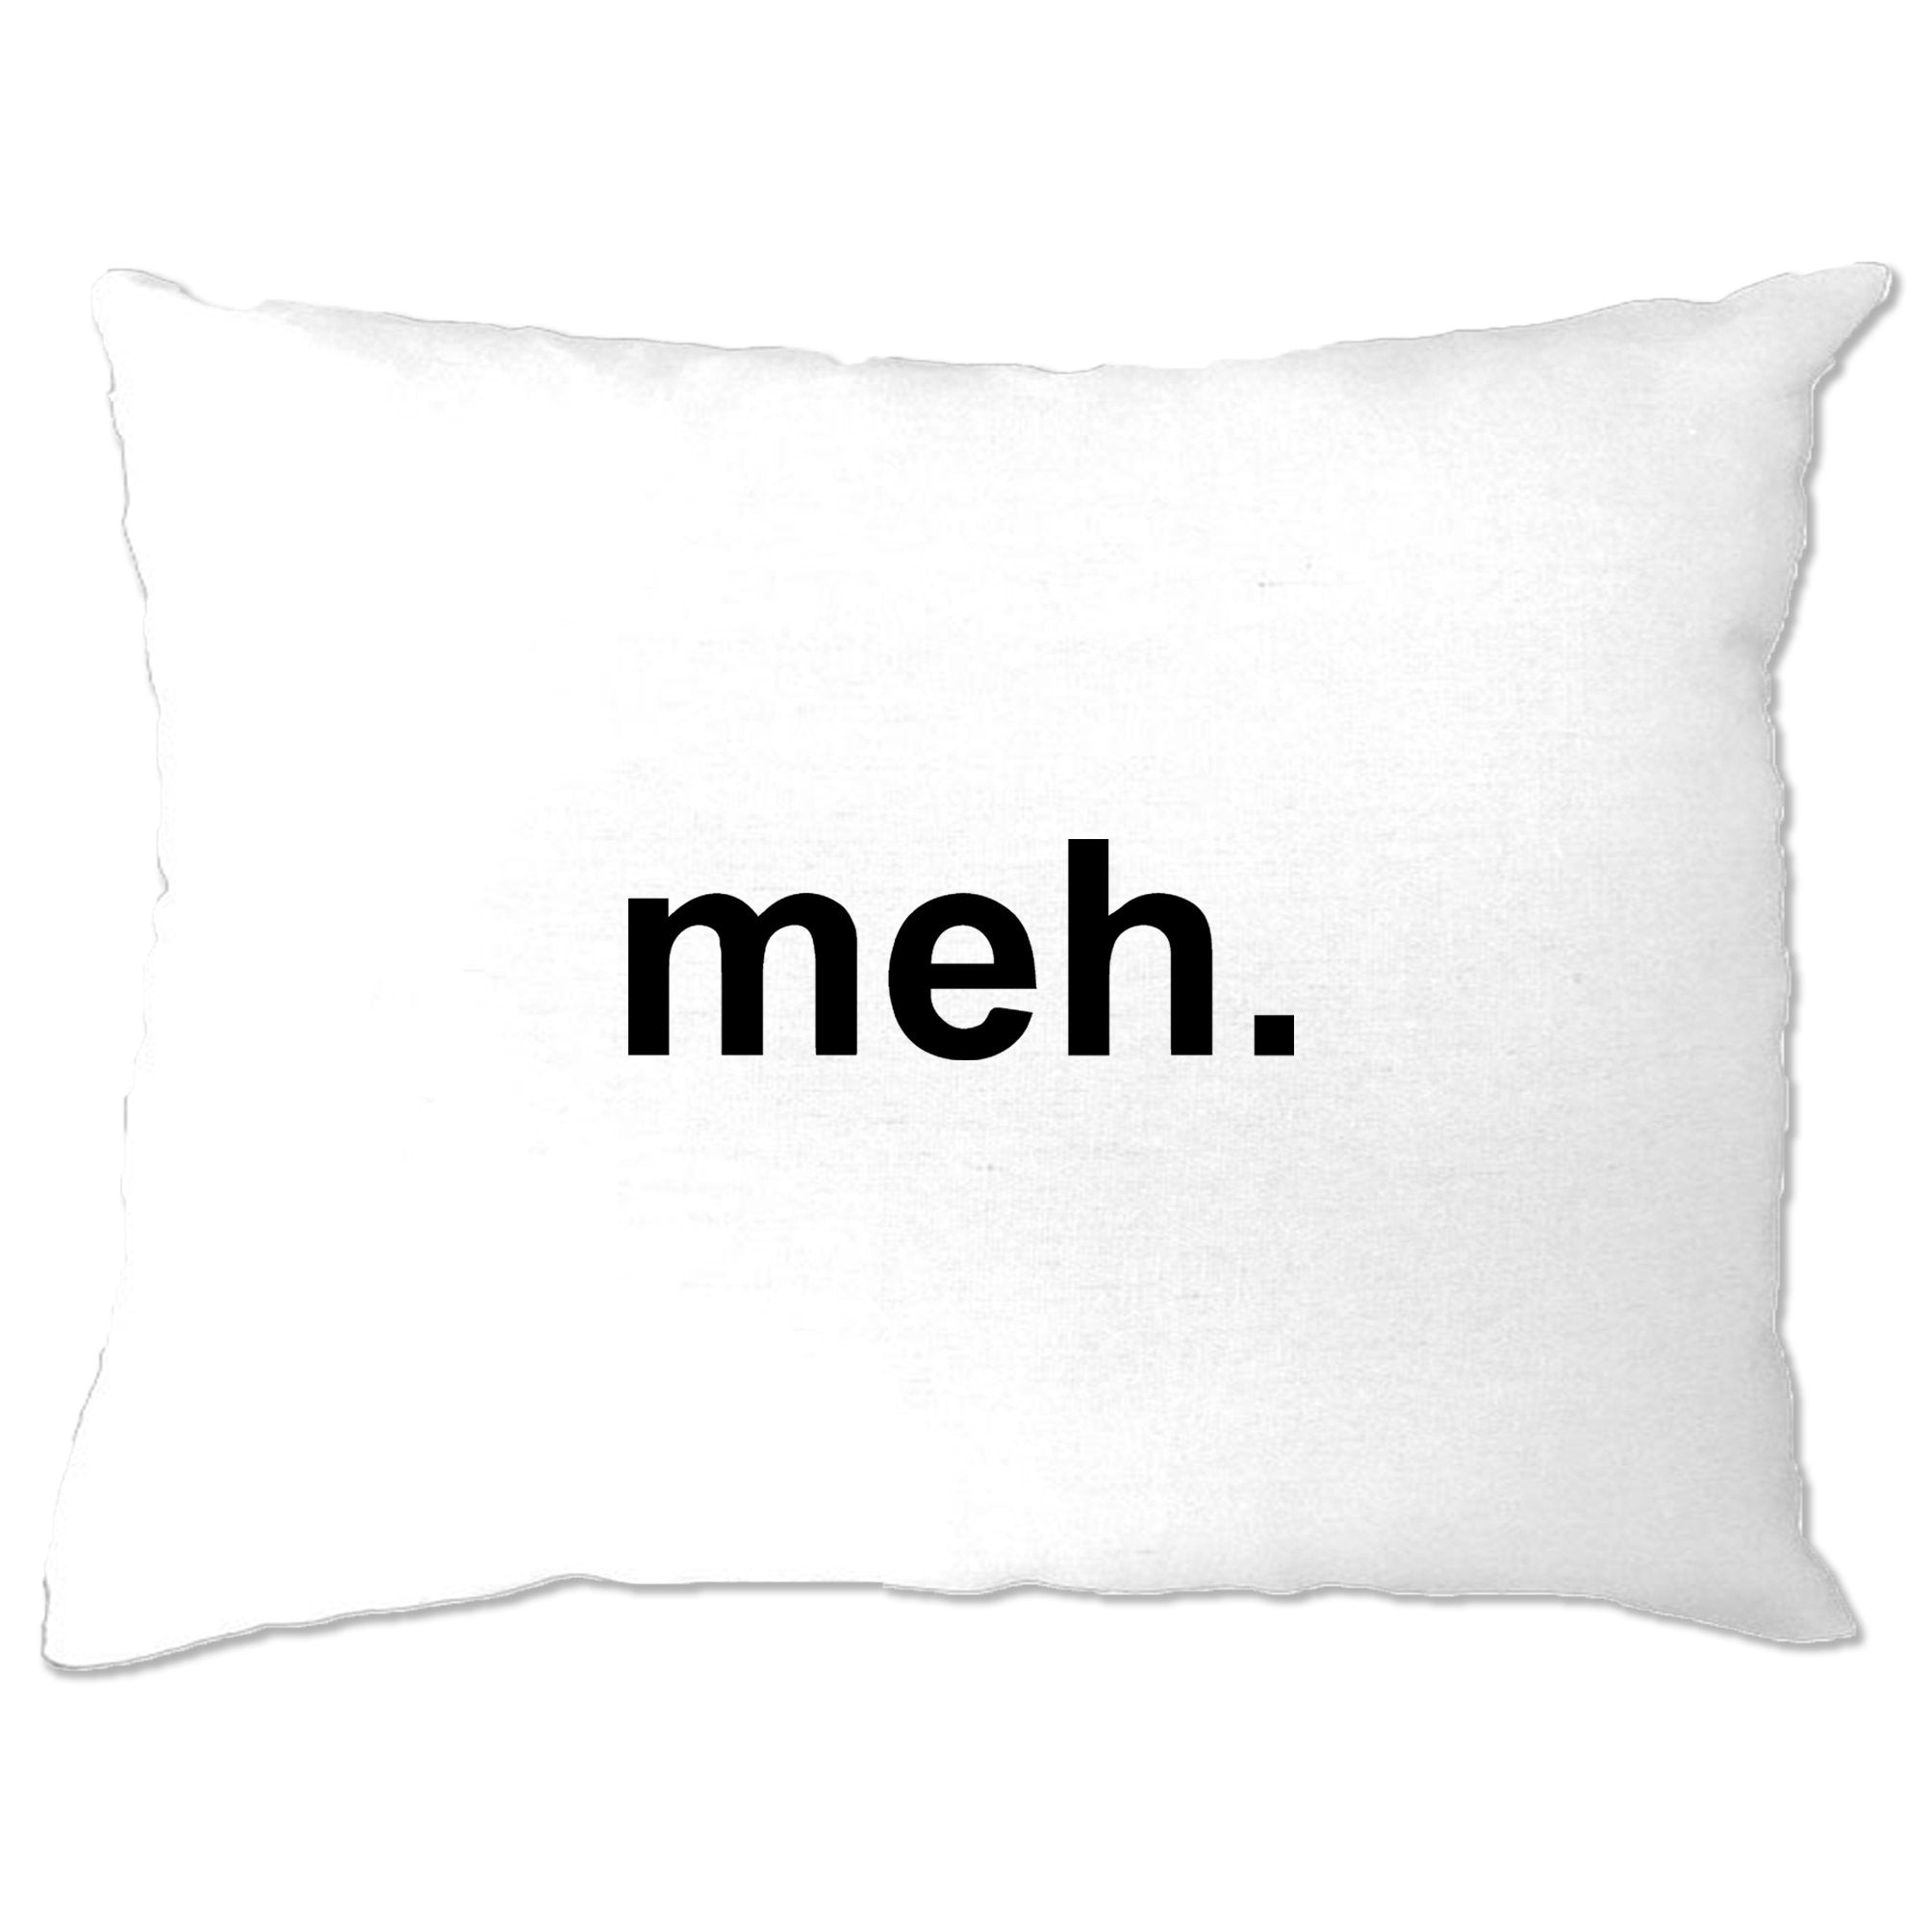 Novelty Pillow Case With Just The Word Meh.